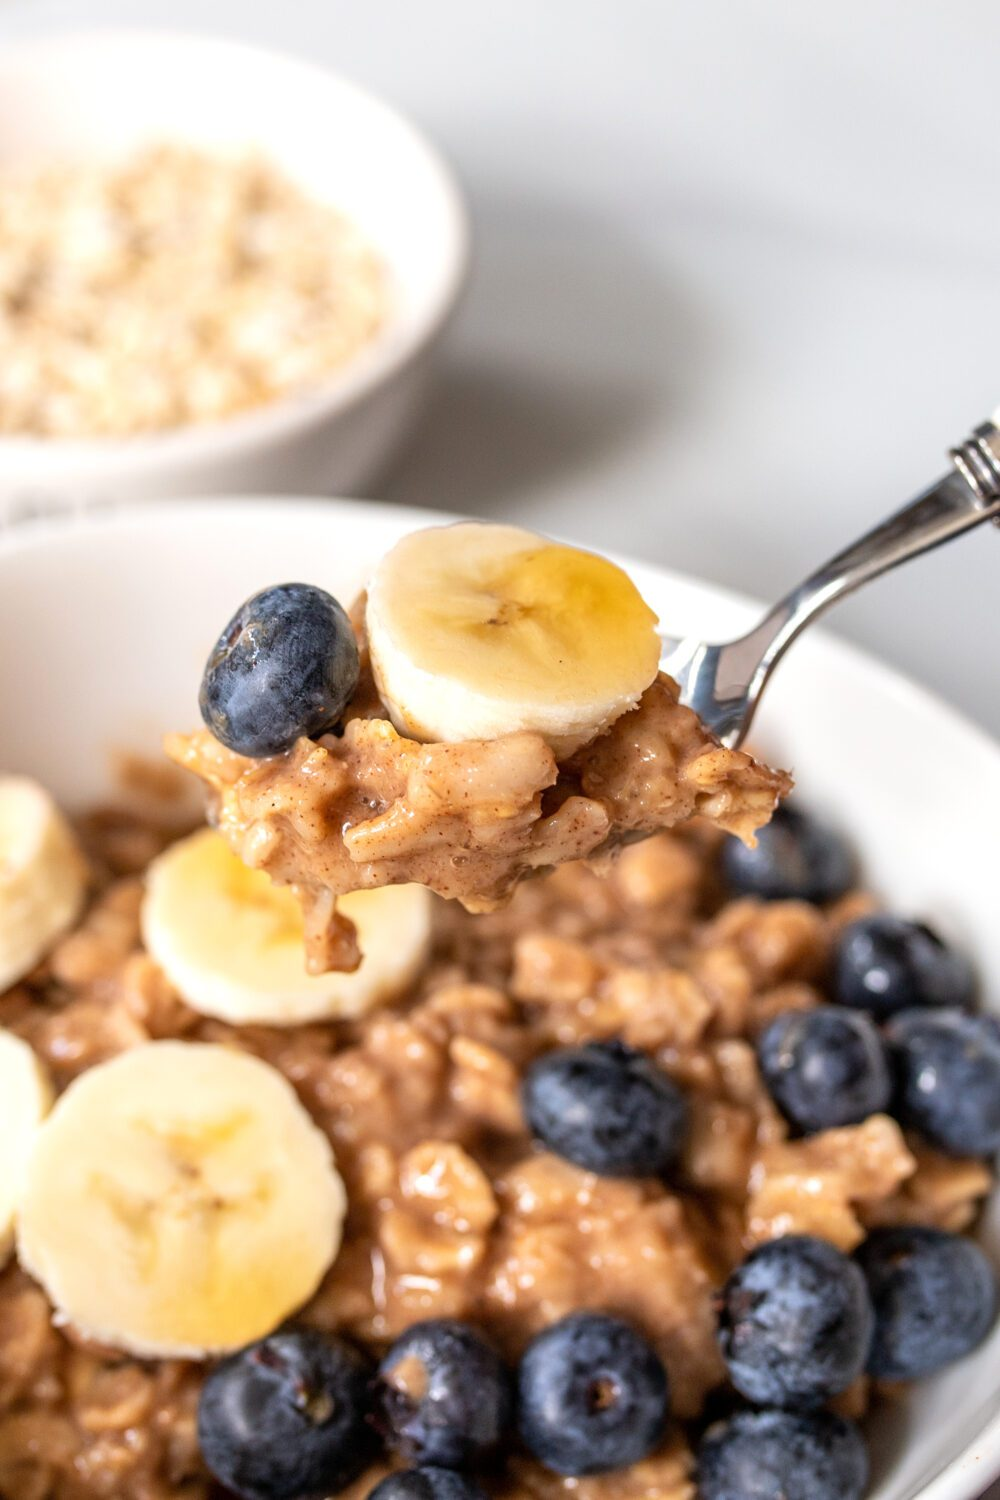 spoonful of homemade oatmeal with bananas and blueberries